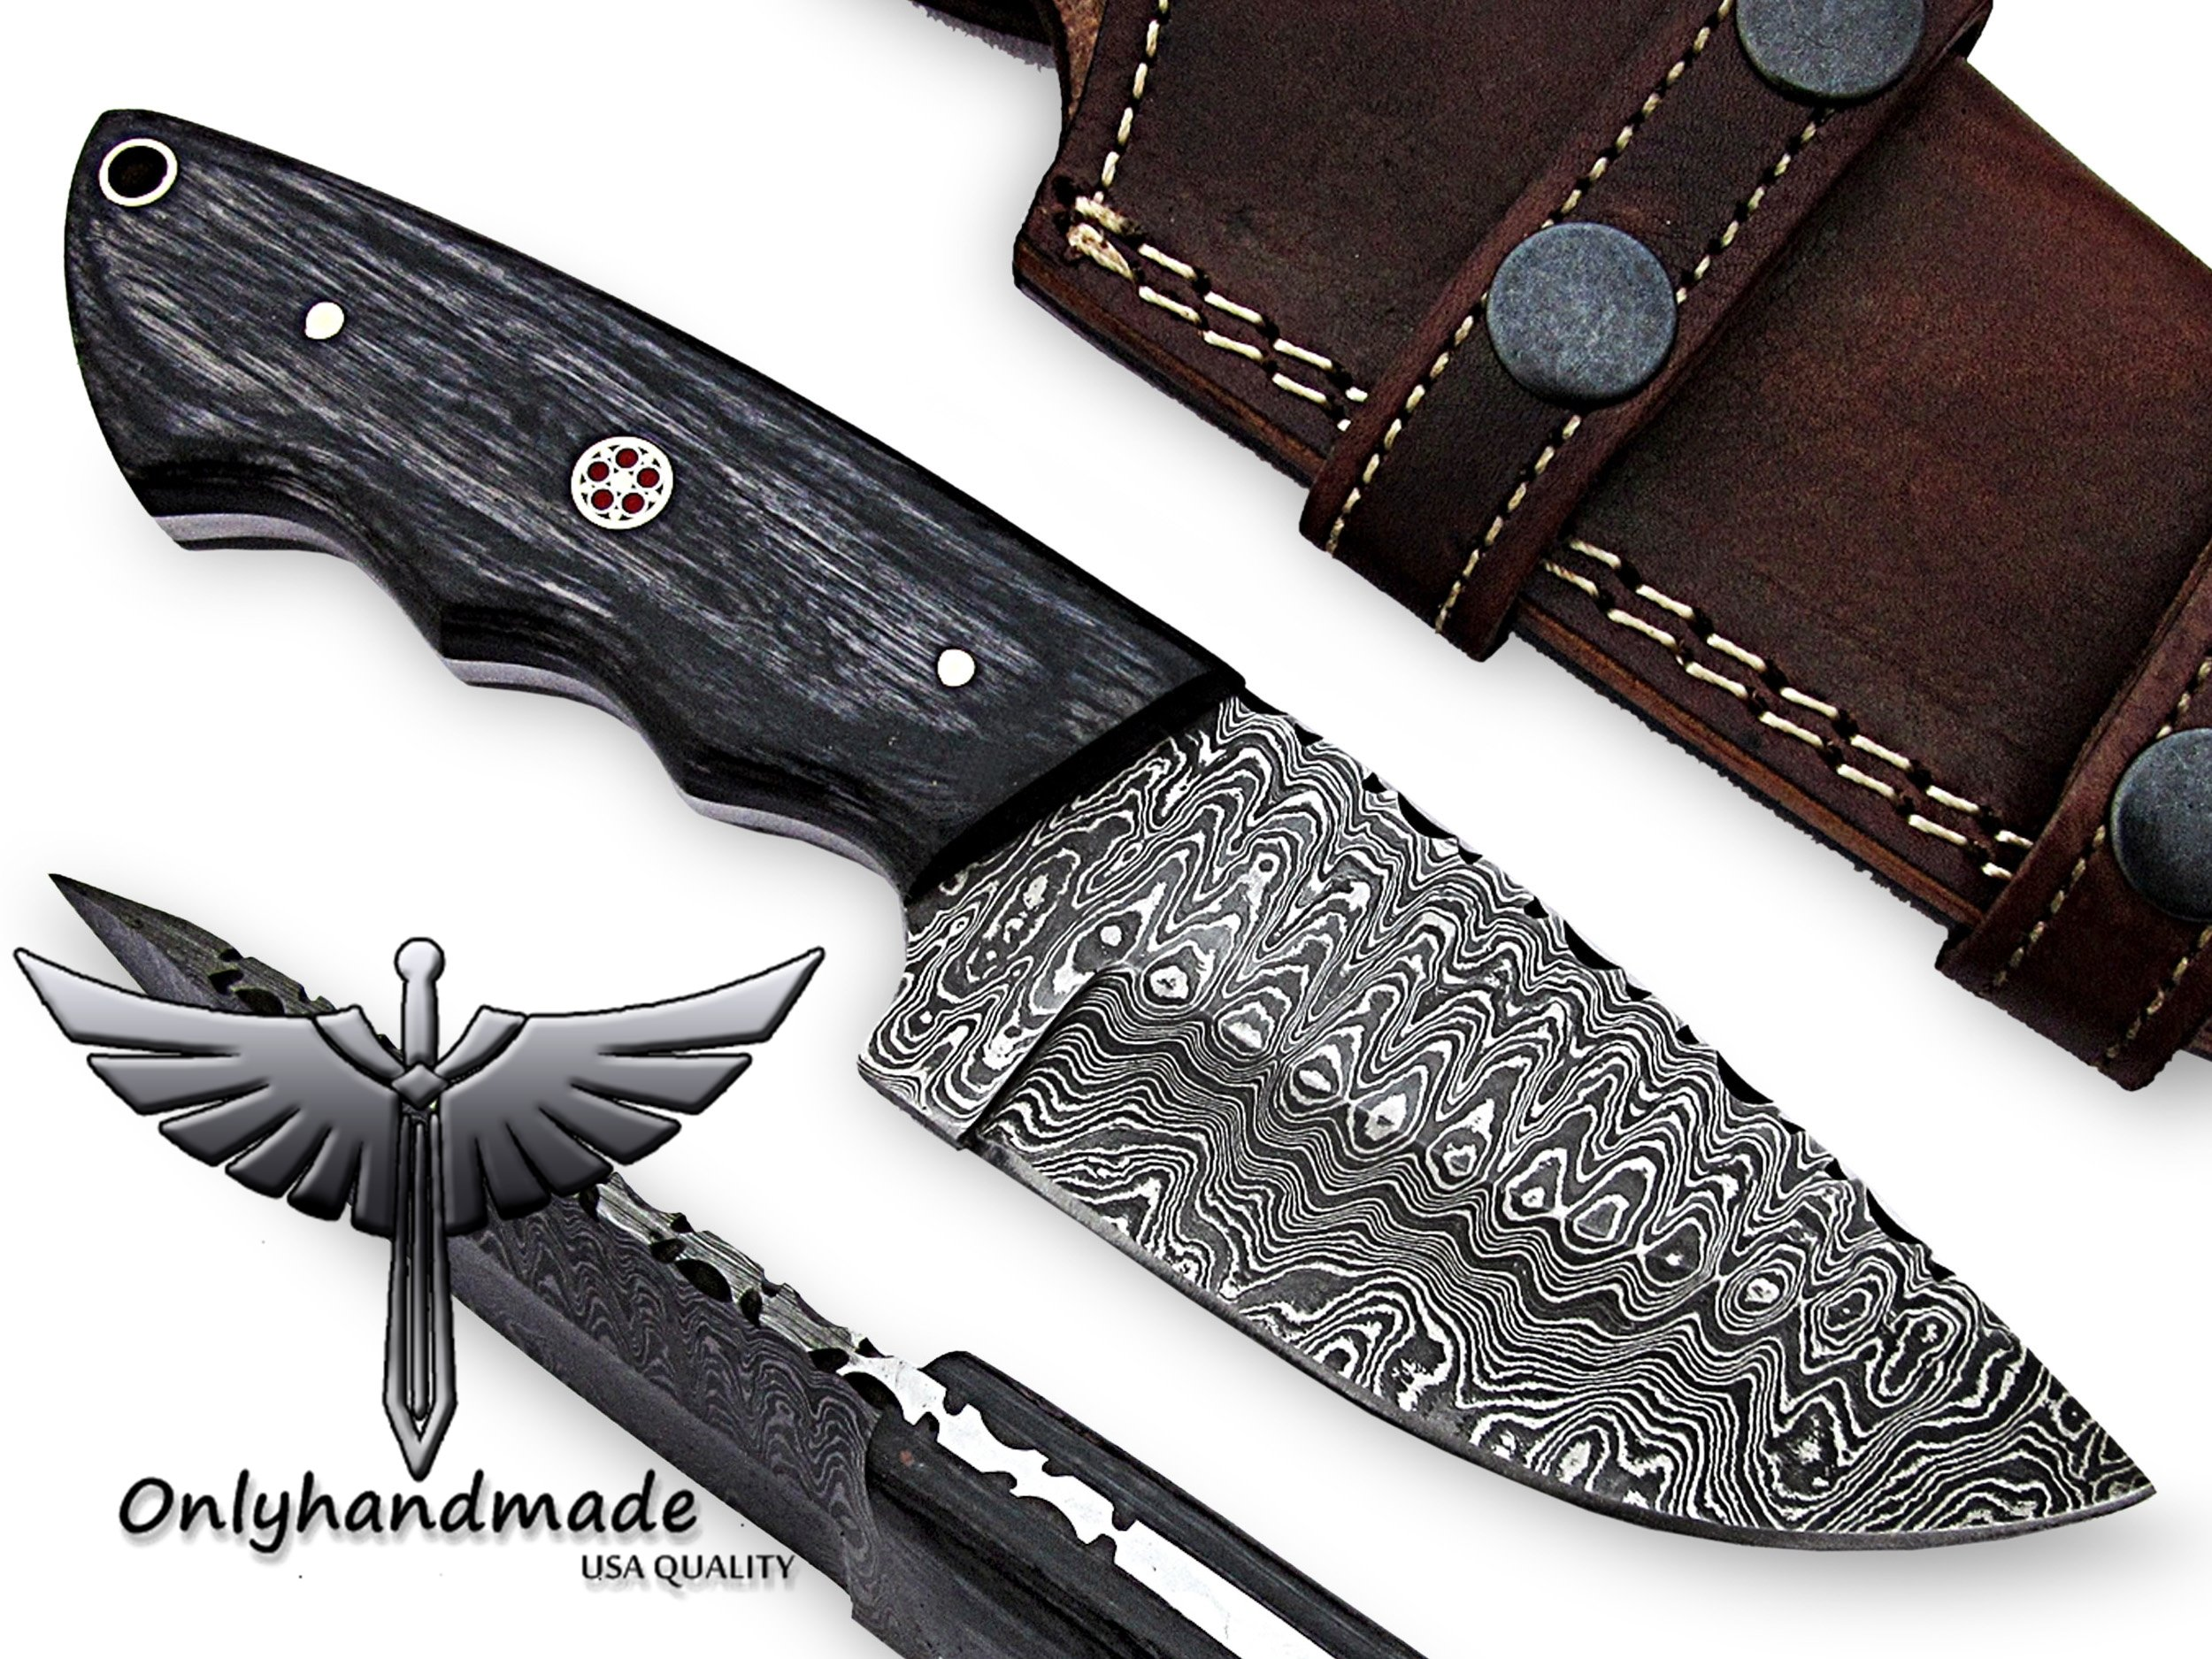 onlyhandmade 7.75'' Beautiful Damascus Knife Made of Remarkable Damascus Steel and Exotic Wood -Its A Hunting Knife with Sheath OHM-058 by onlyhandmade